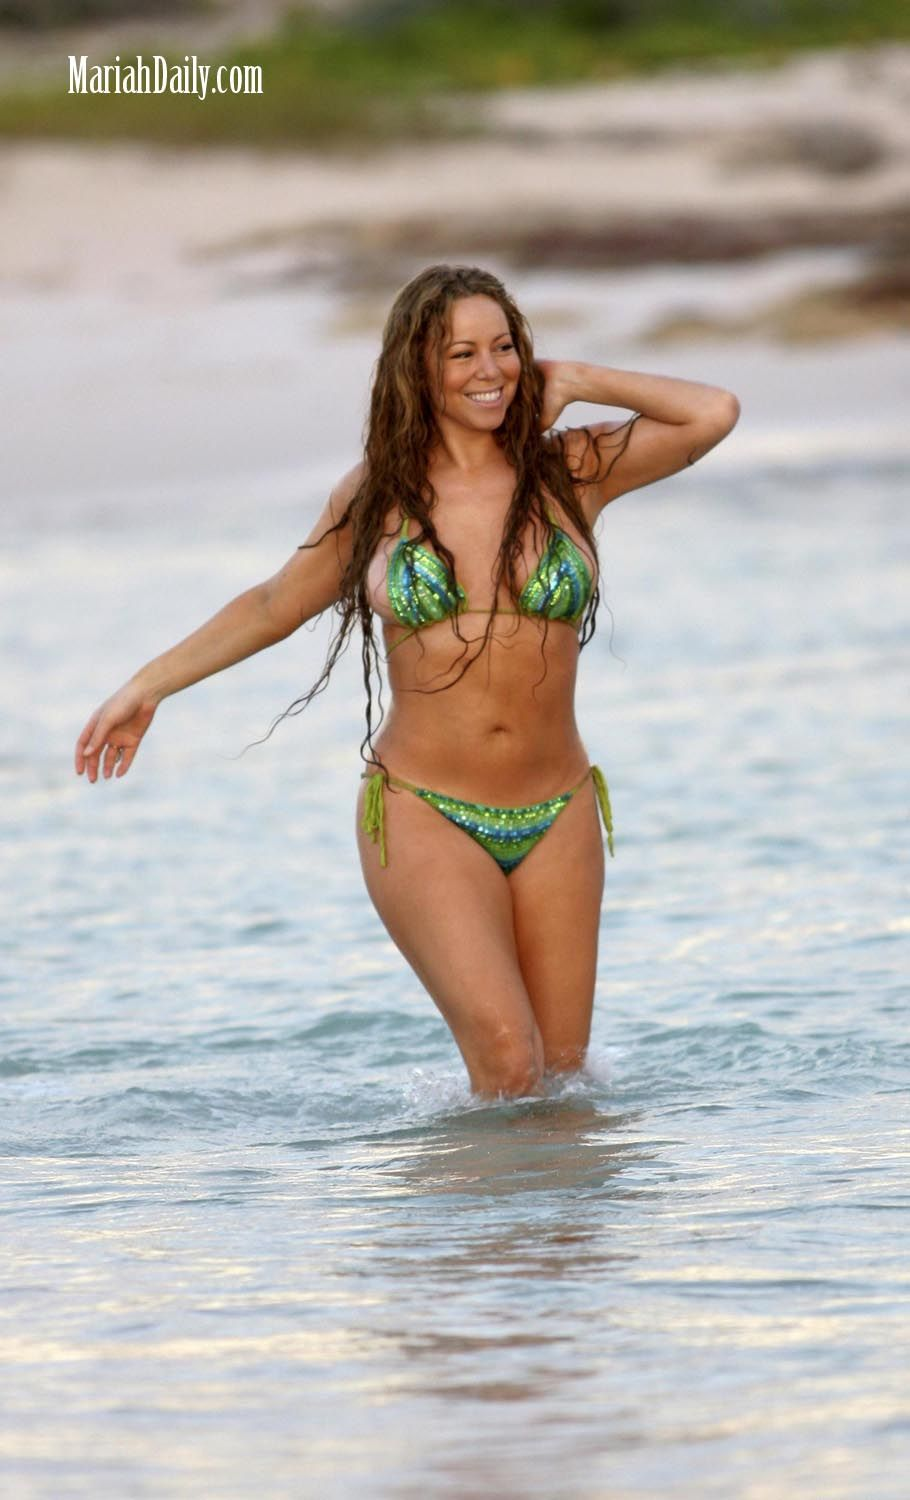 Mariah Carey Bikini Pics  Hot Body  Swimsuit  and Sexy Photos Good Celebrities Many stars these days have taken their yearly vacation  away from busy work  day  and so has the attractive Mariah Carey  In the company of friends